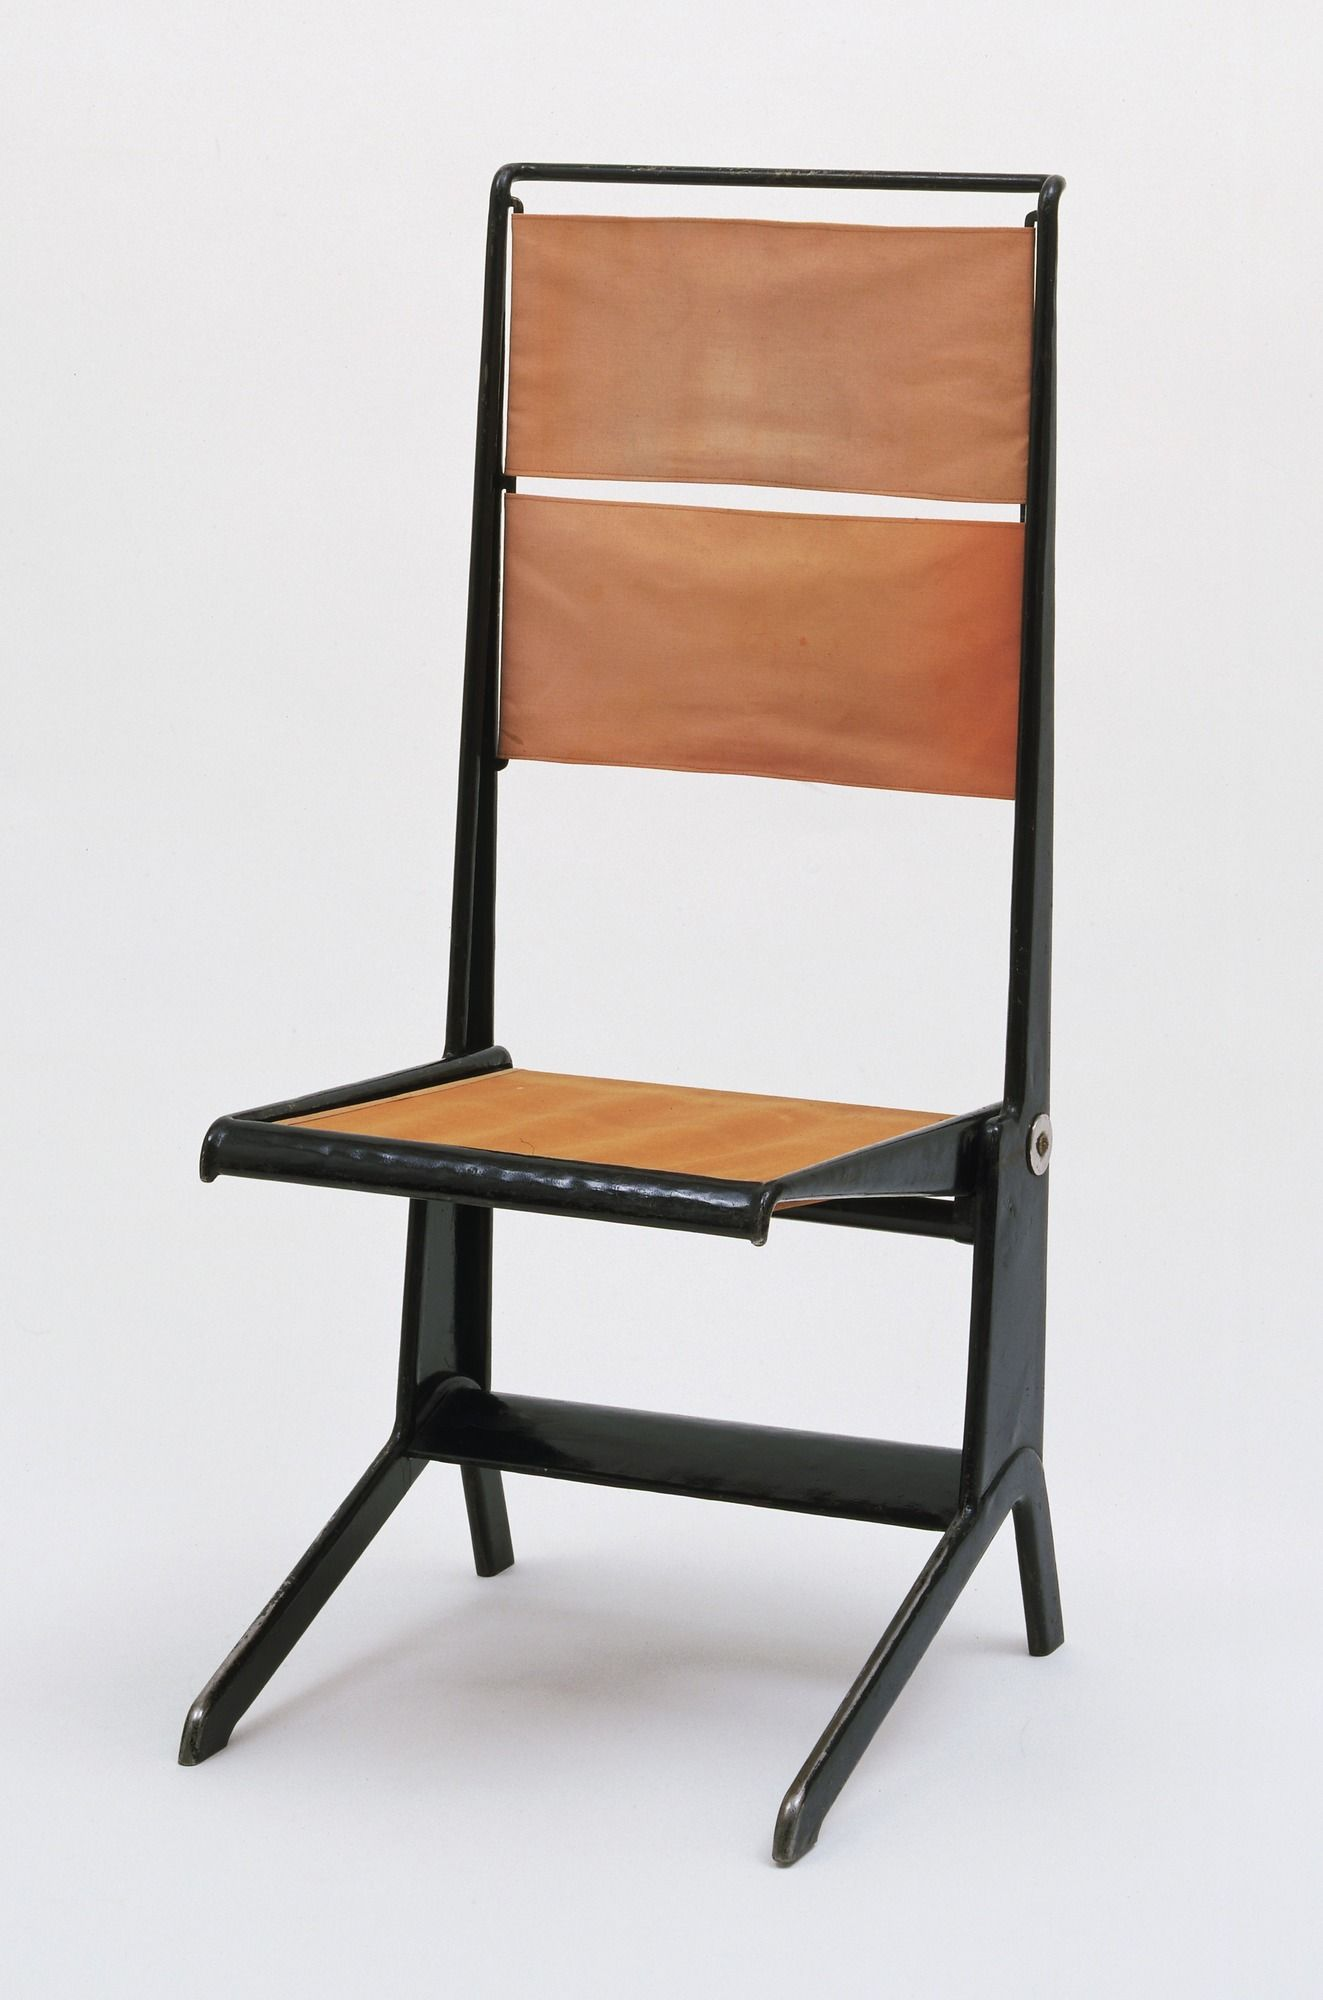 Jean Prouv 233 Pierre Missey Folding Chair 1930 The